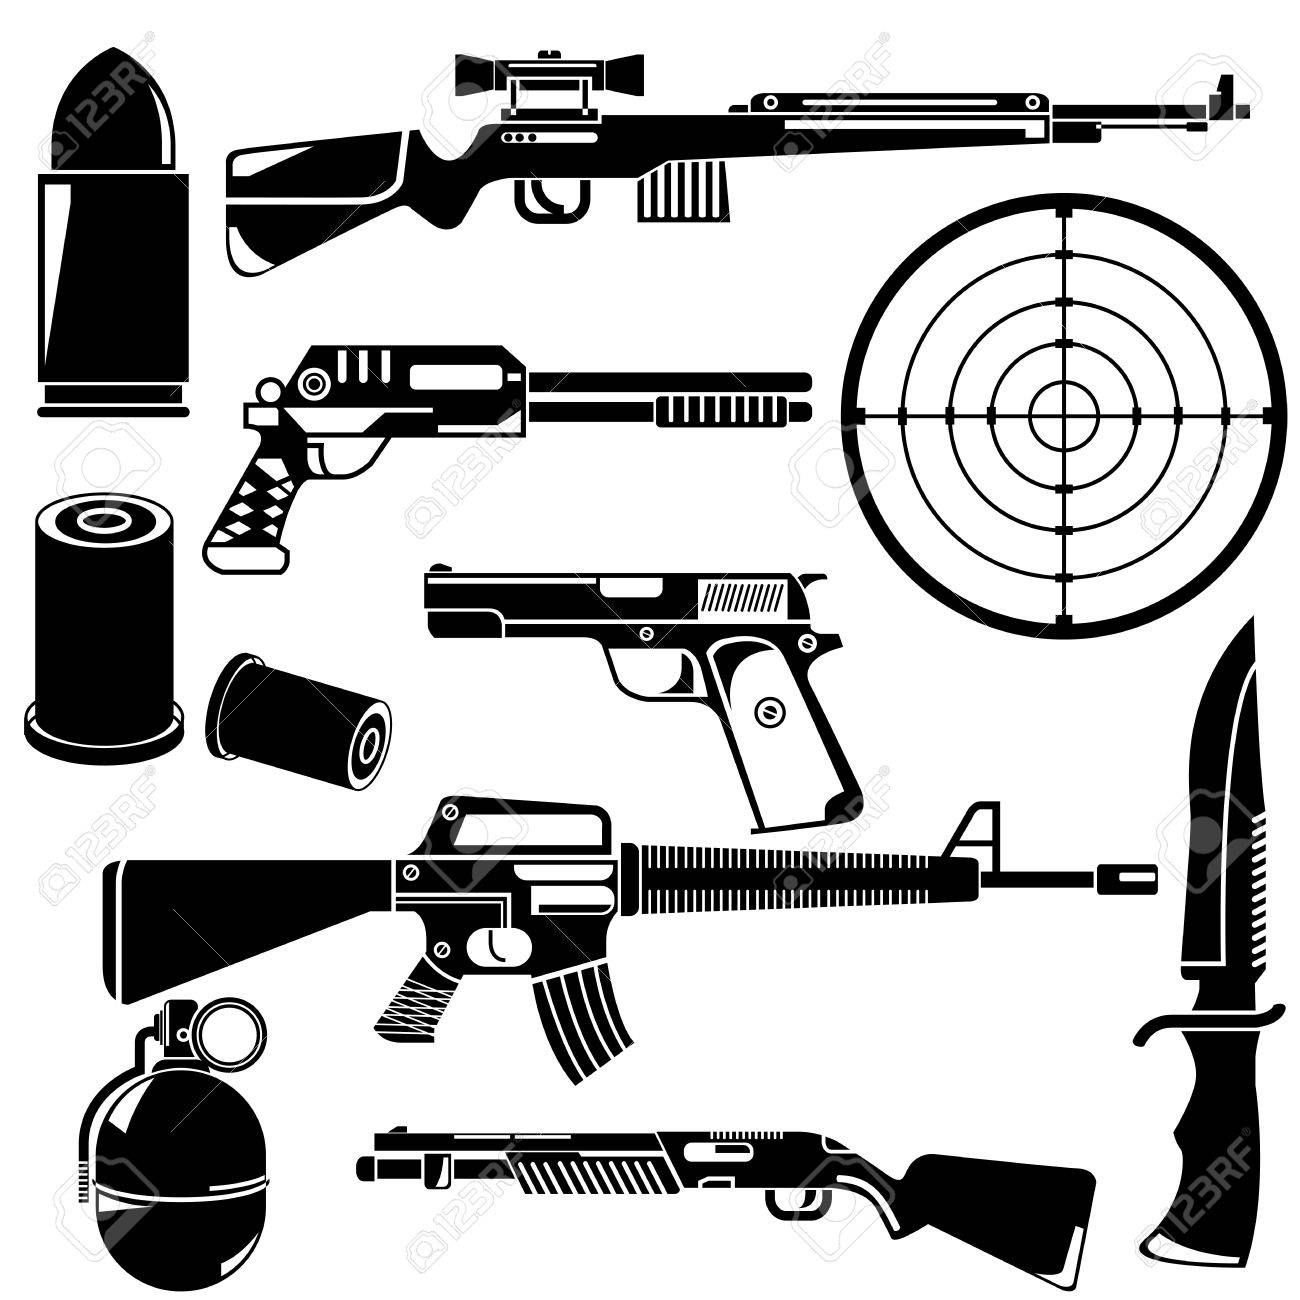 gun and weapon - 32924070